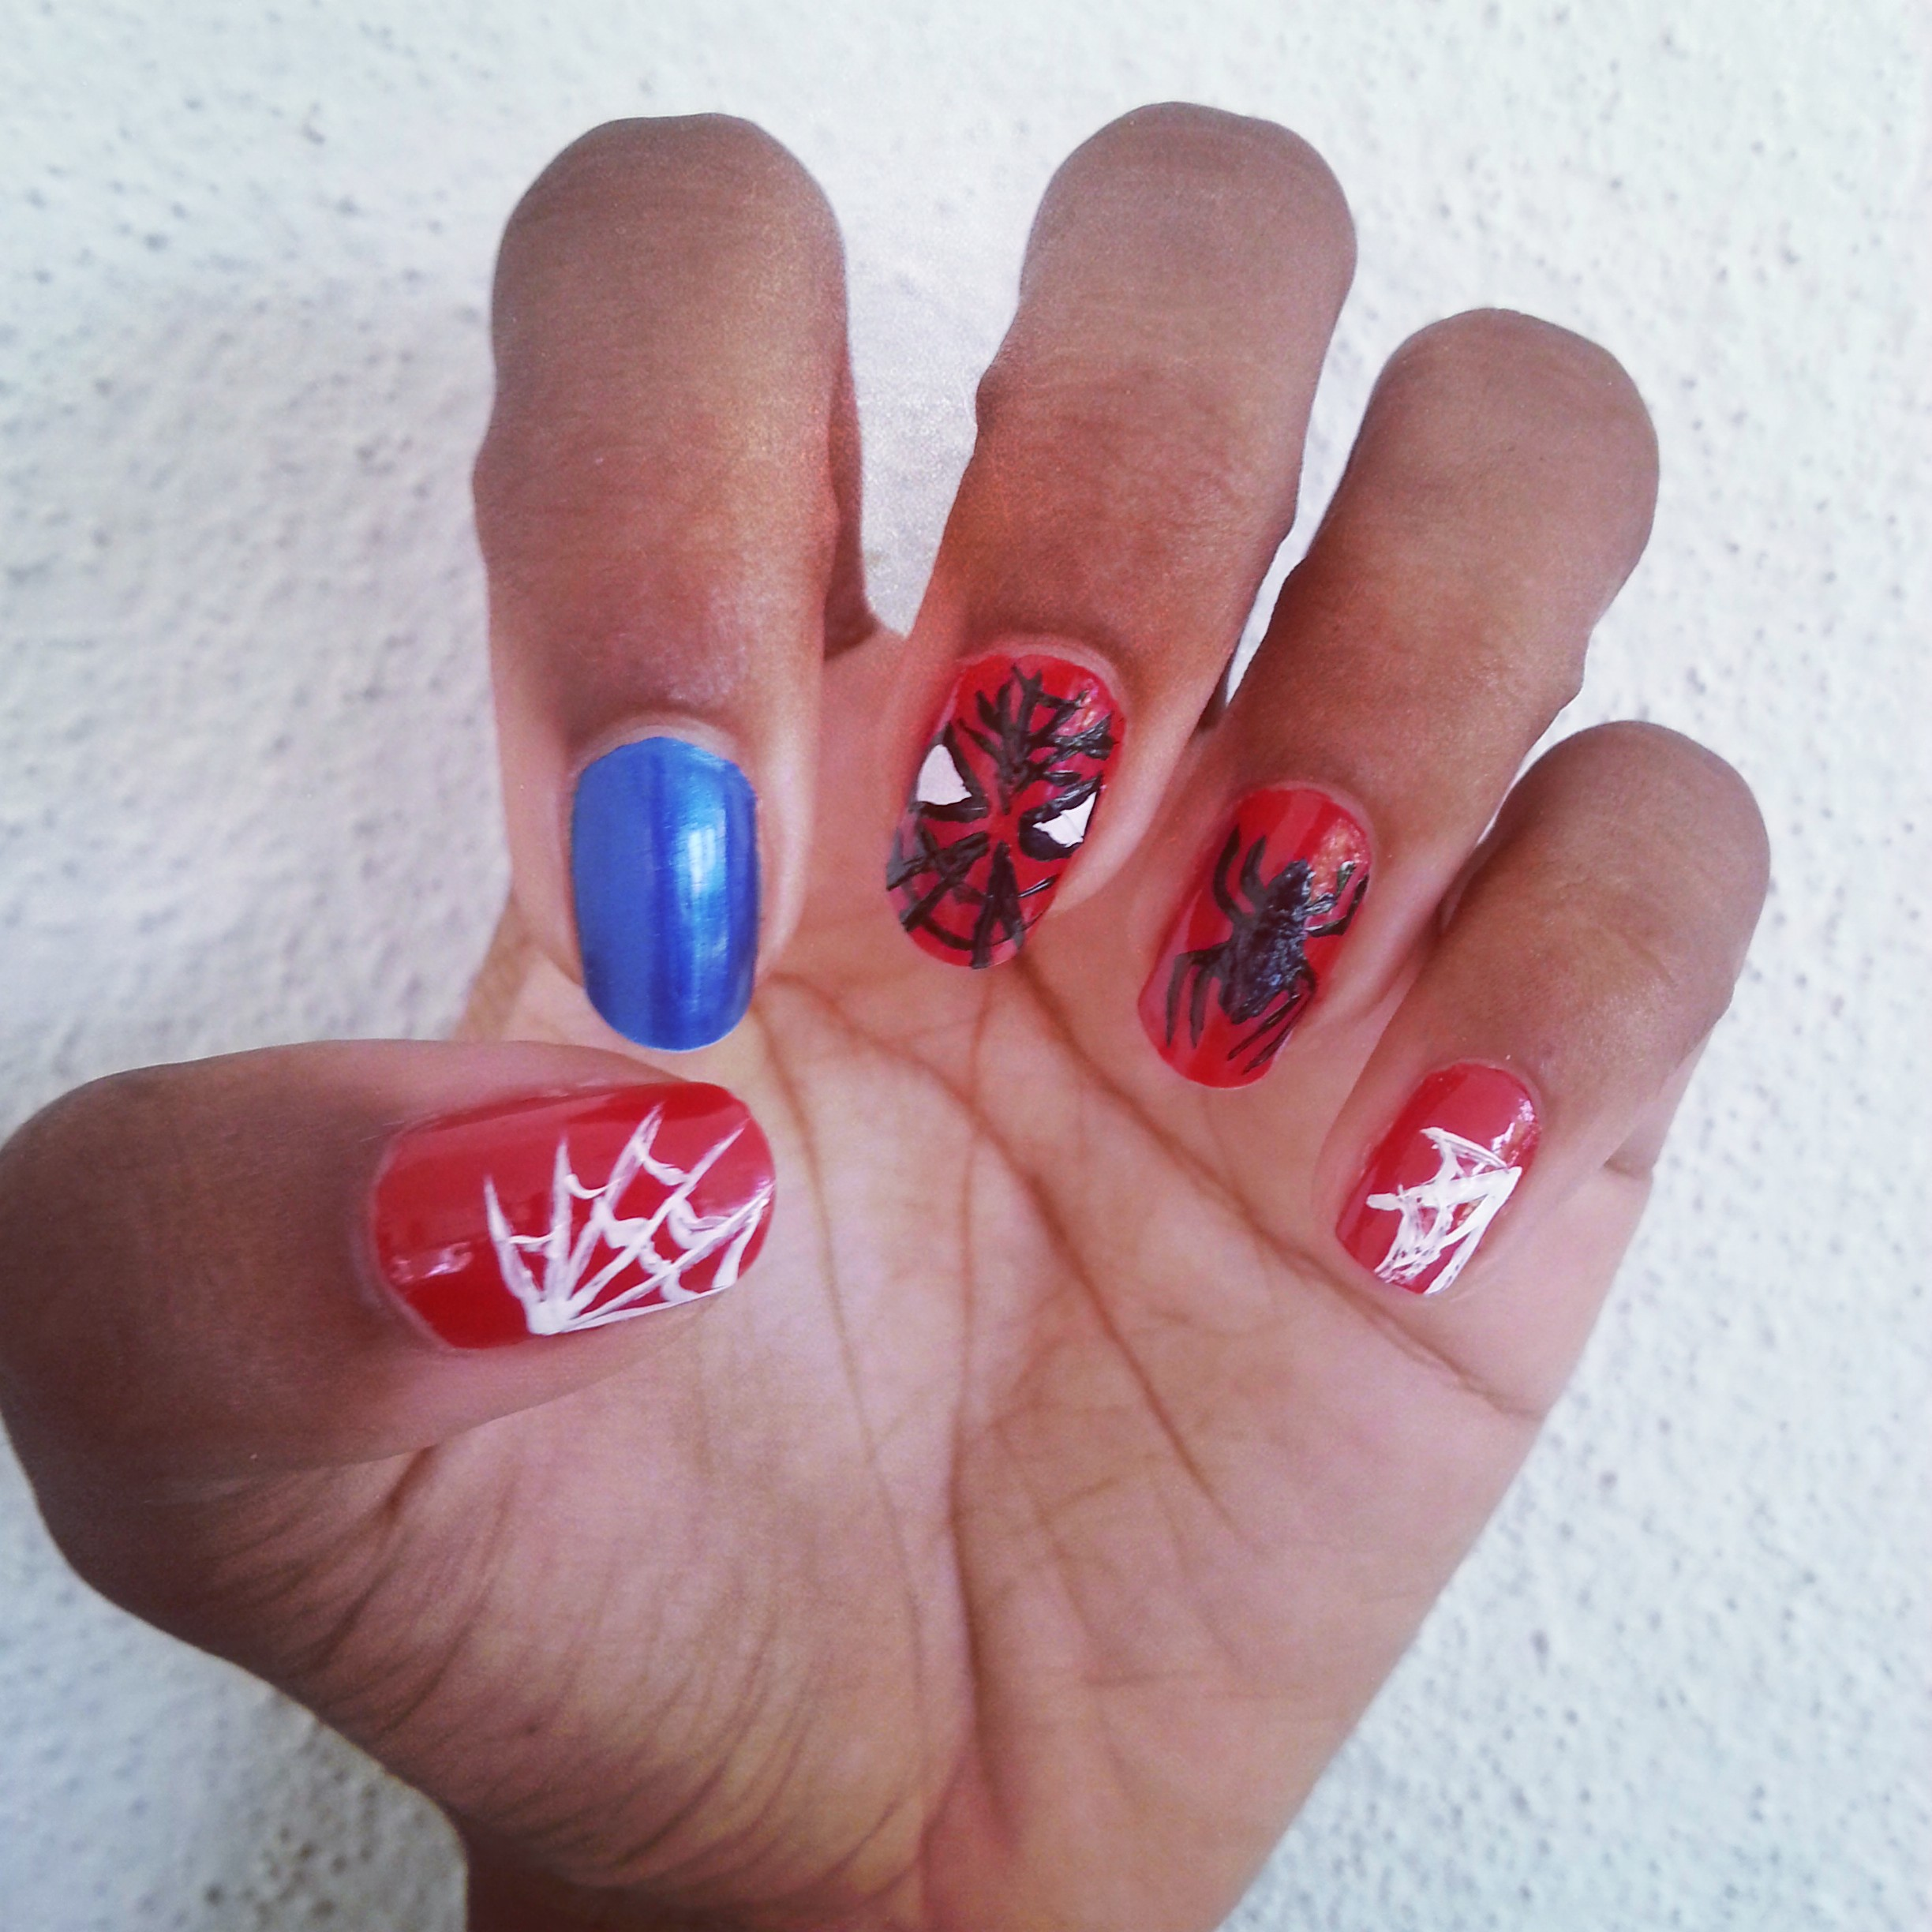 Diy spiderman nail art deeper than fashion nail art for this comic book superhero img20140429181405 prinsesfo Choice Image